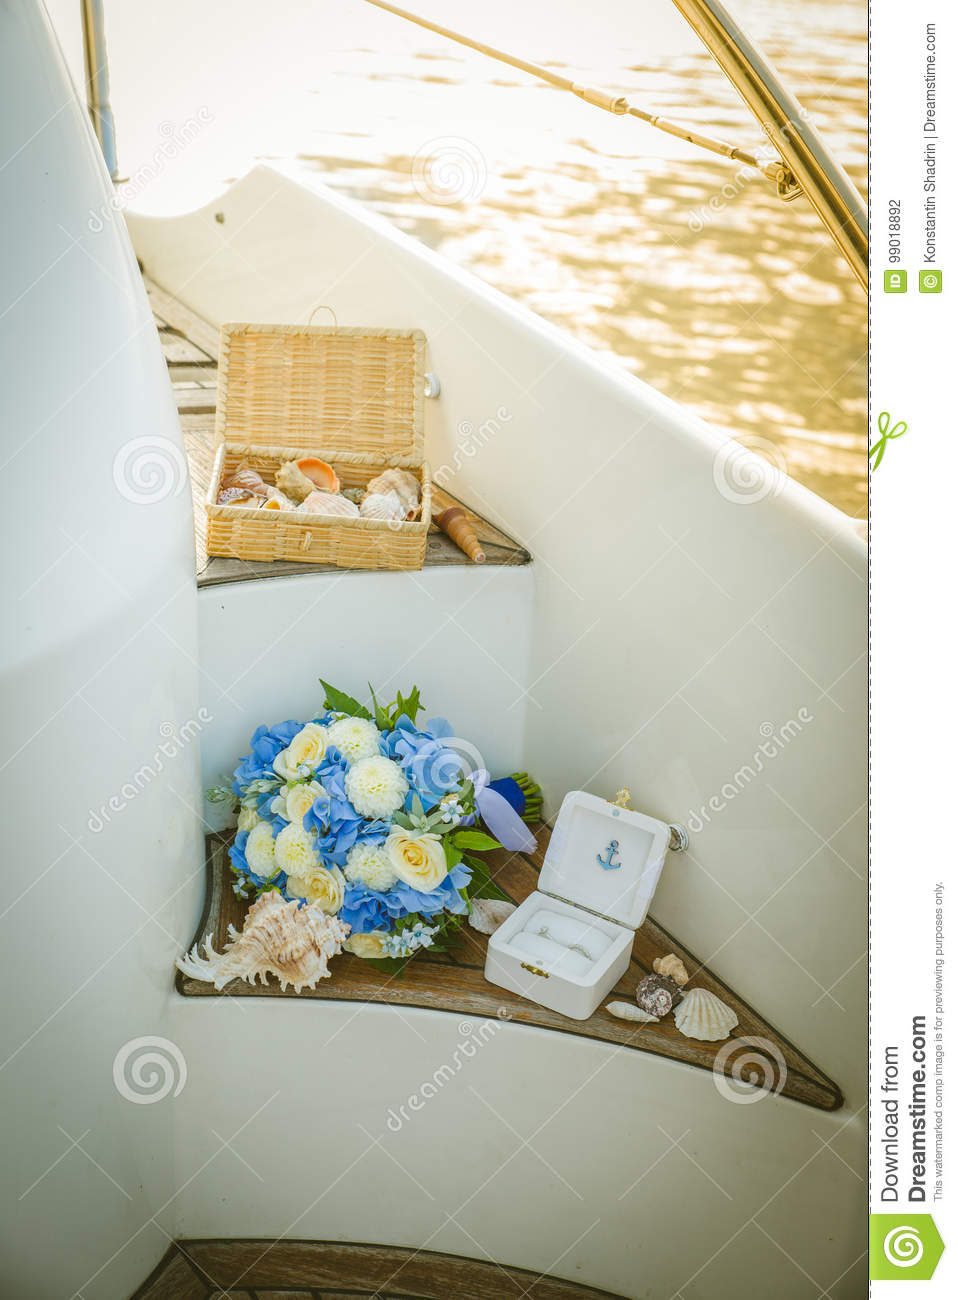 Wedding Decorations Stock Photo Image Of Design Clearance